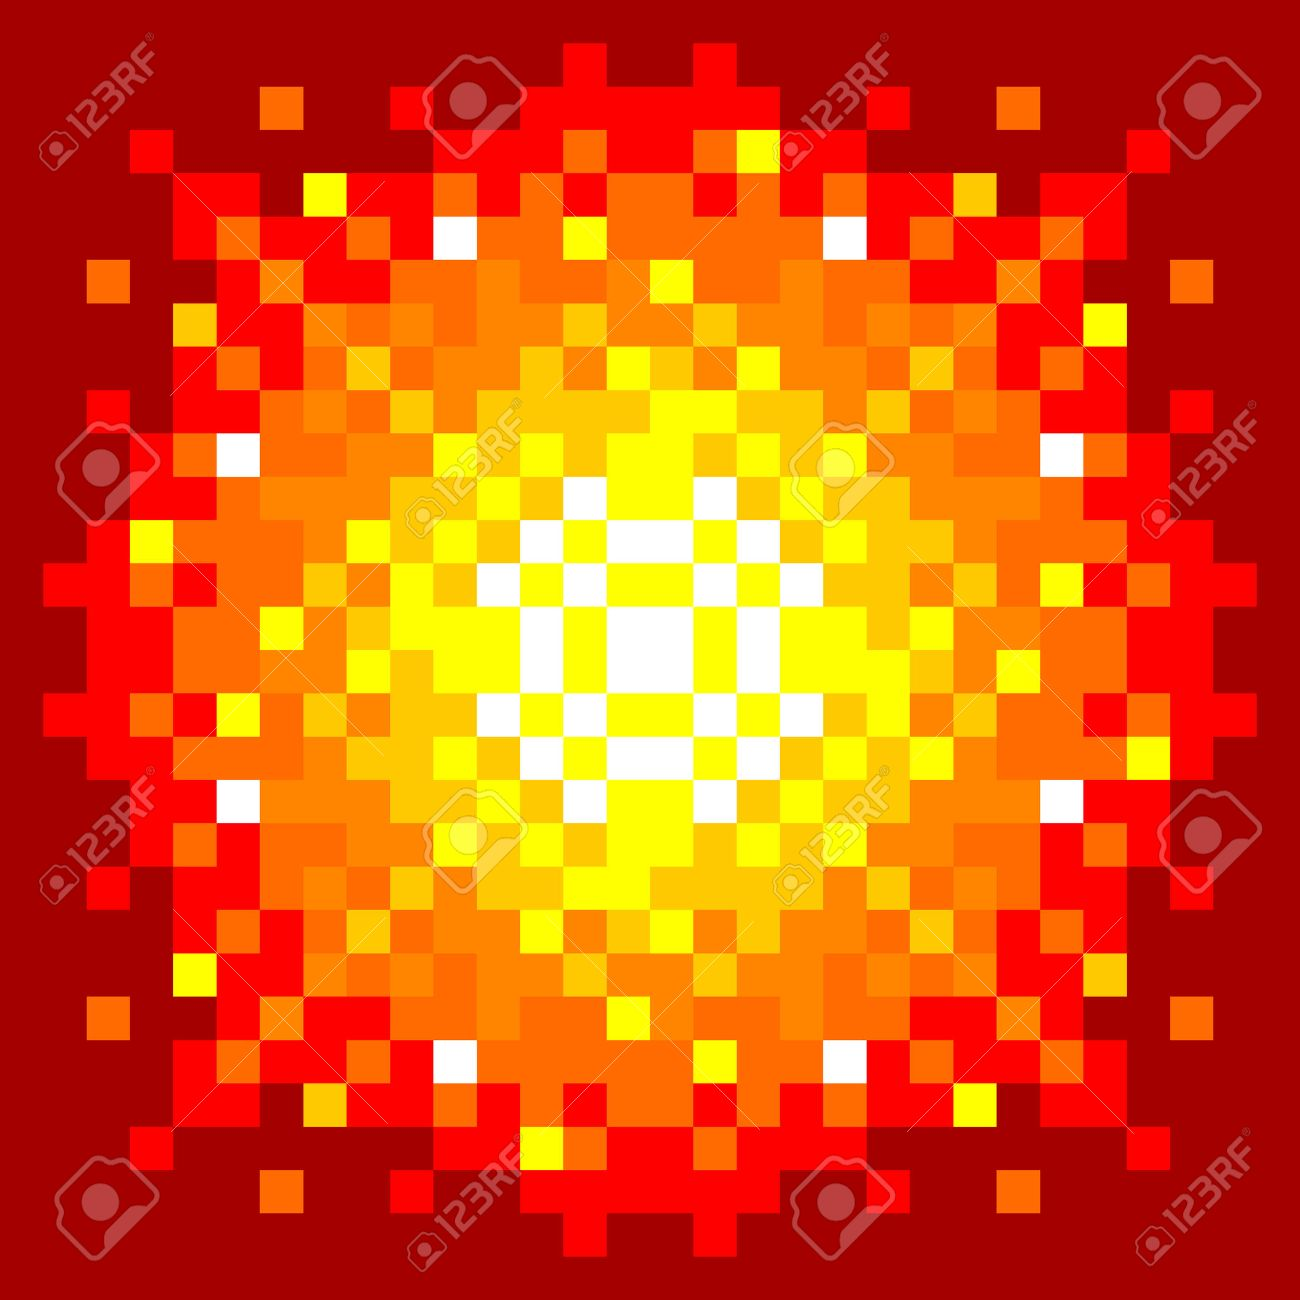 8-Bit Pixel-art Firey Explosion on a Red Background. EPS8 vector Stock Vector - 54110175